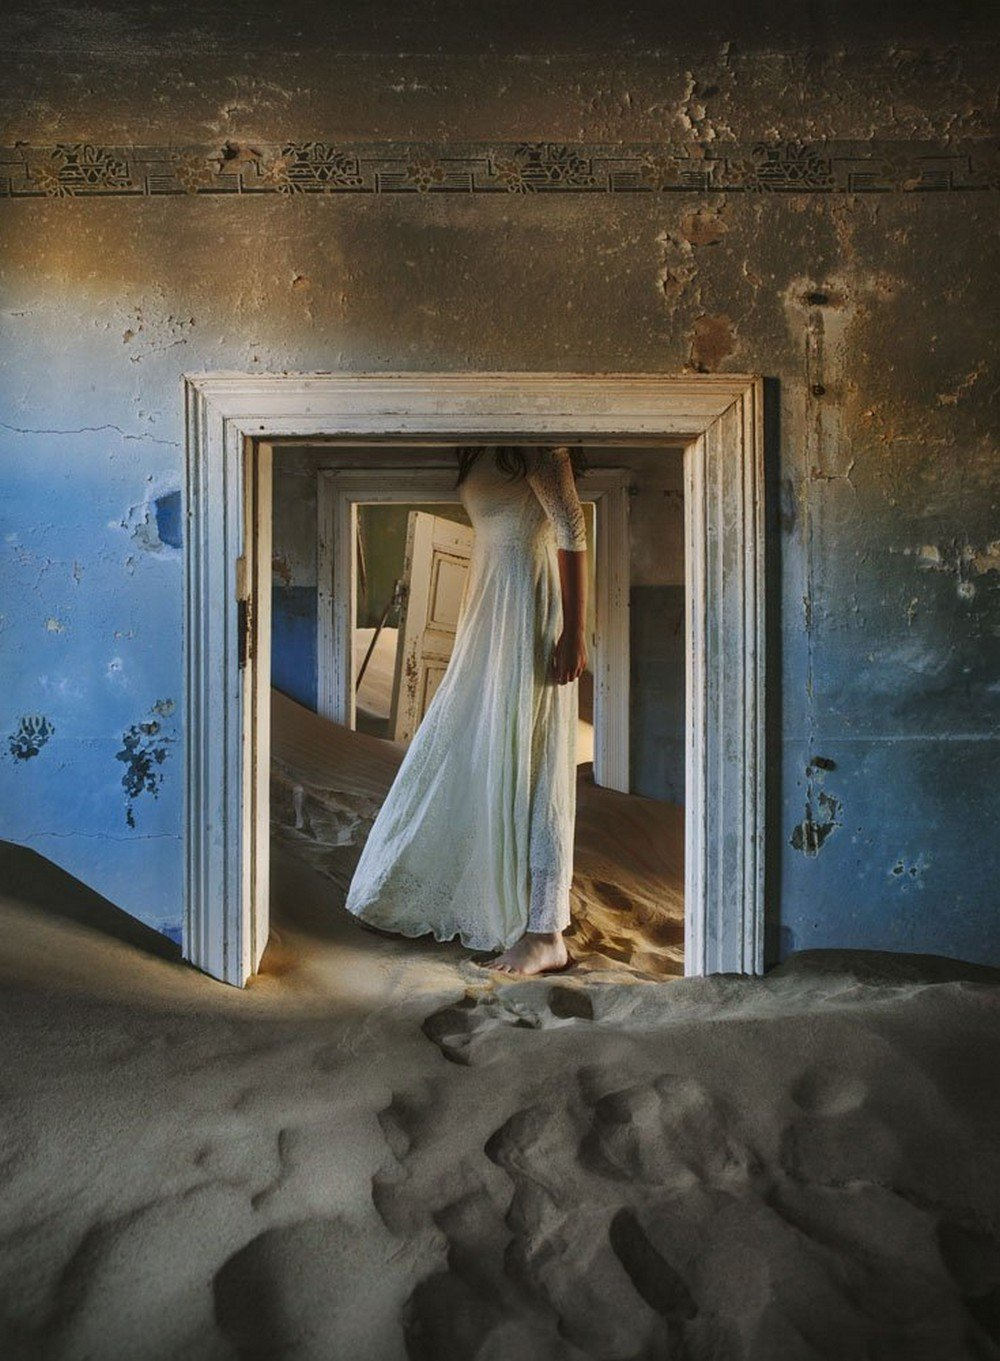 mcevoy-found-an-abandoned-home-back-in-australia-to-house-her-photography-exhibit-about-kolmanskop